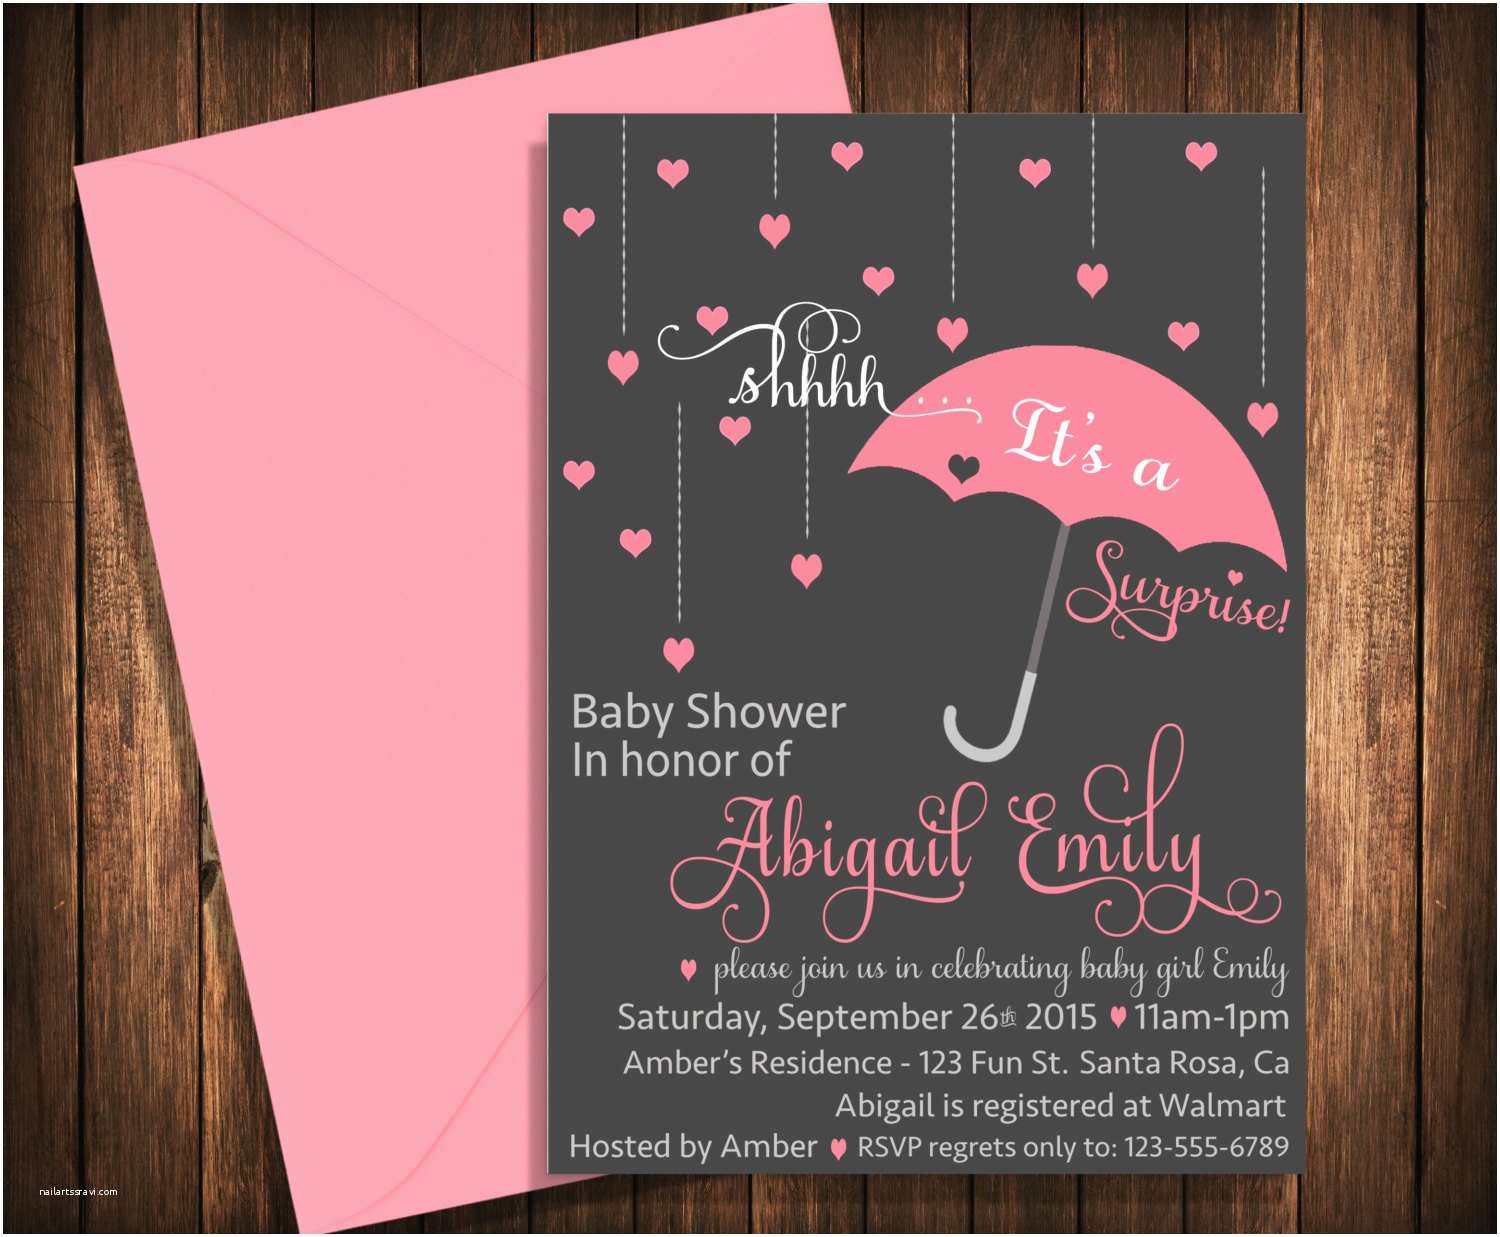 Surprise Baby Shower Invitations Surprise Baby Shower Invitation Umbrella Raindrops